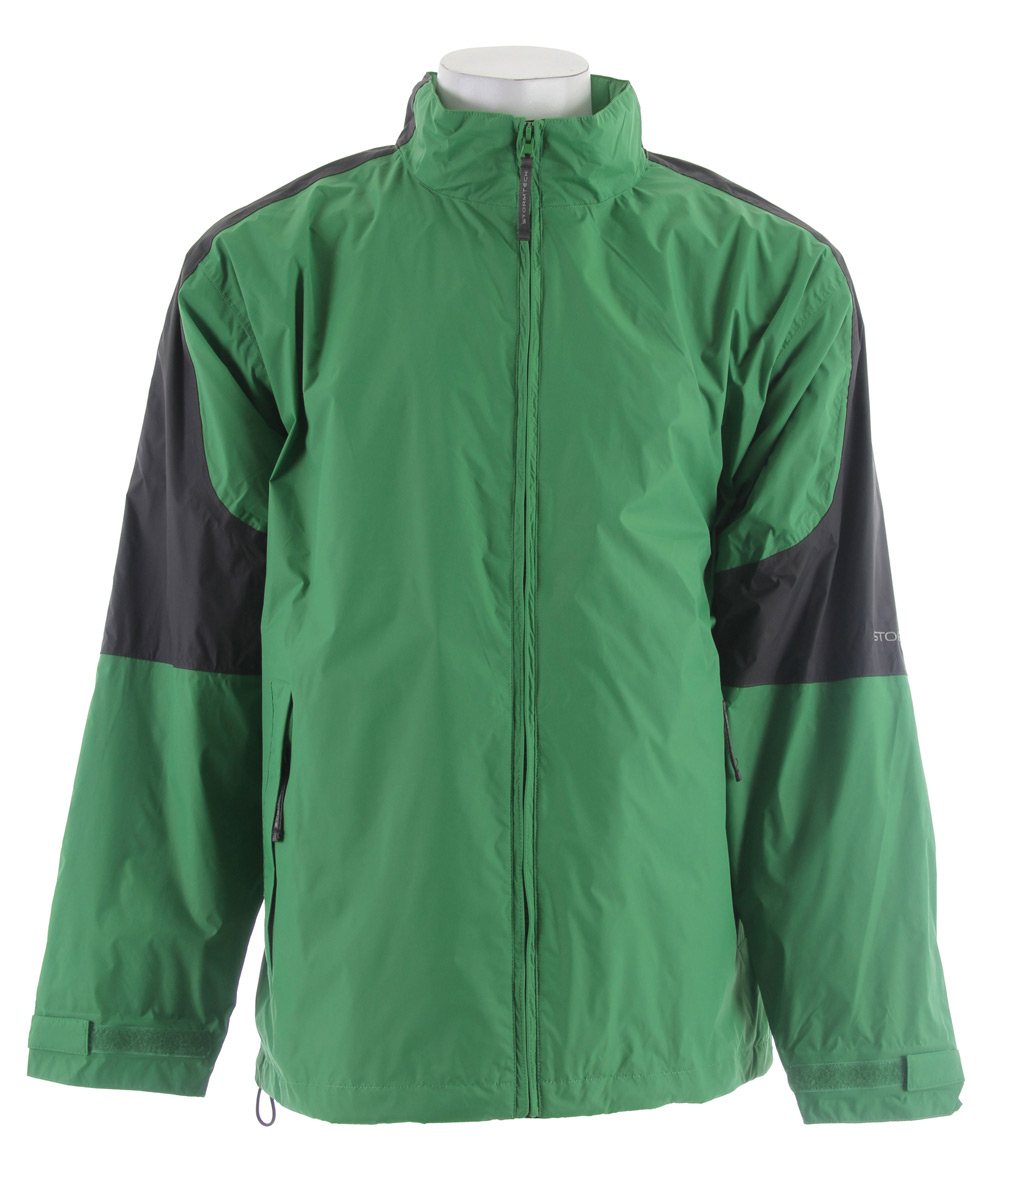 Stormtech Nautilus Packable Storm Jacket Kiwi/Granite - $35.95